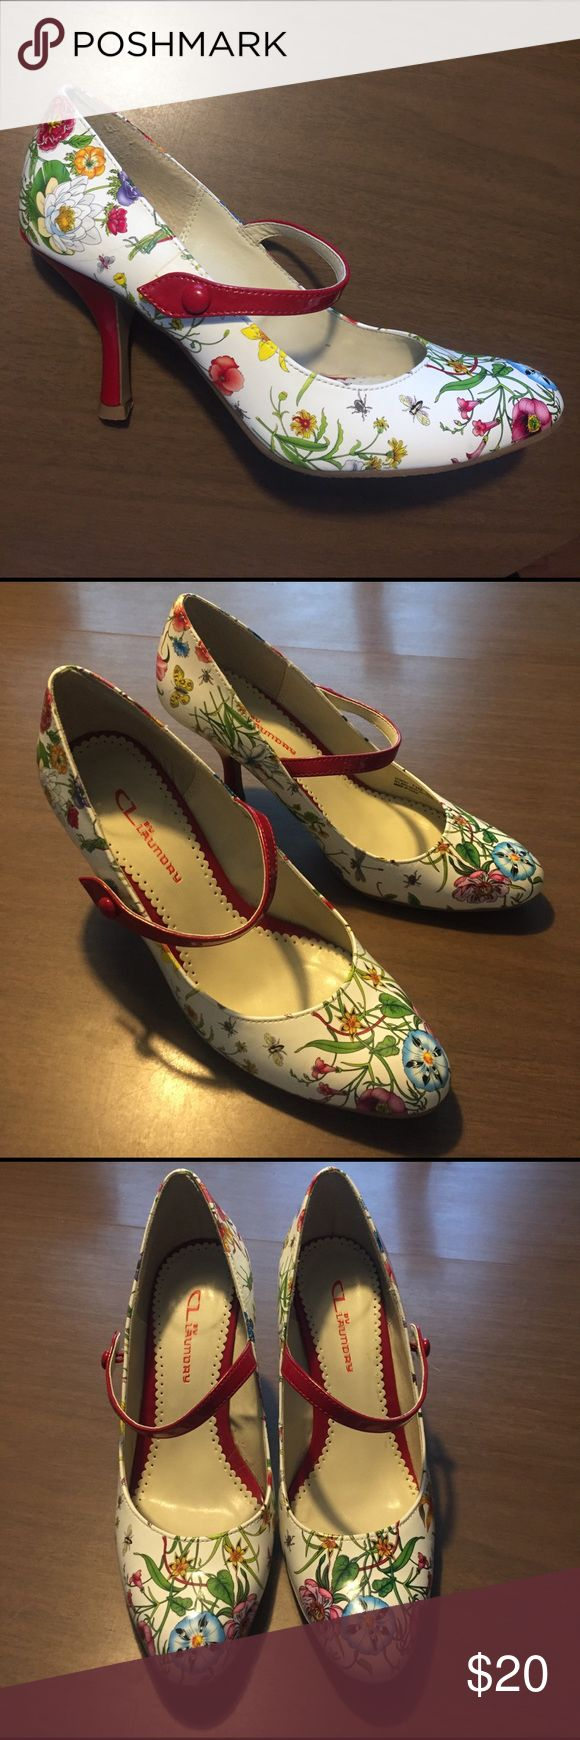 CL Laundry shoes White with floral print high heel shoes with red foot strap and heel. Size 7.5, great used condition! Chinese Laundry Shoes Heels